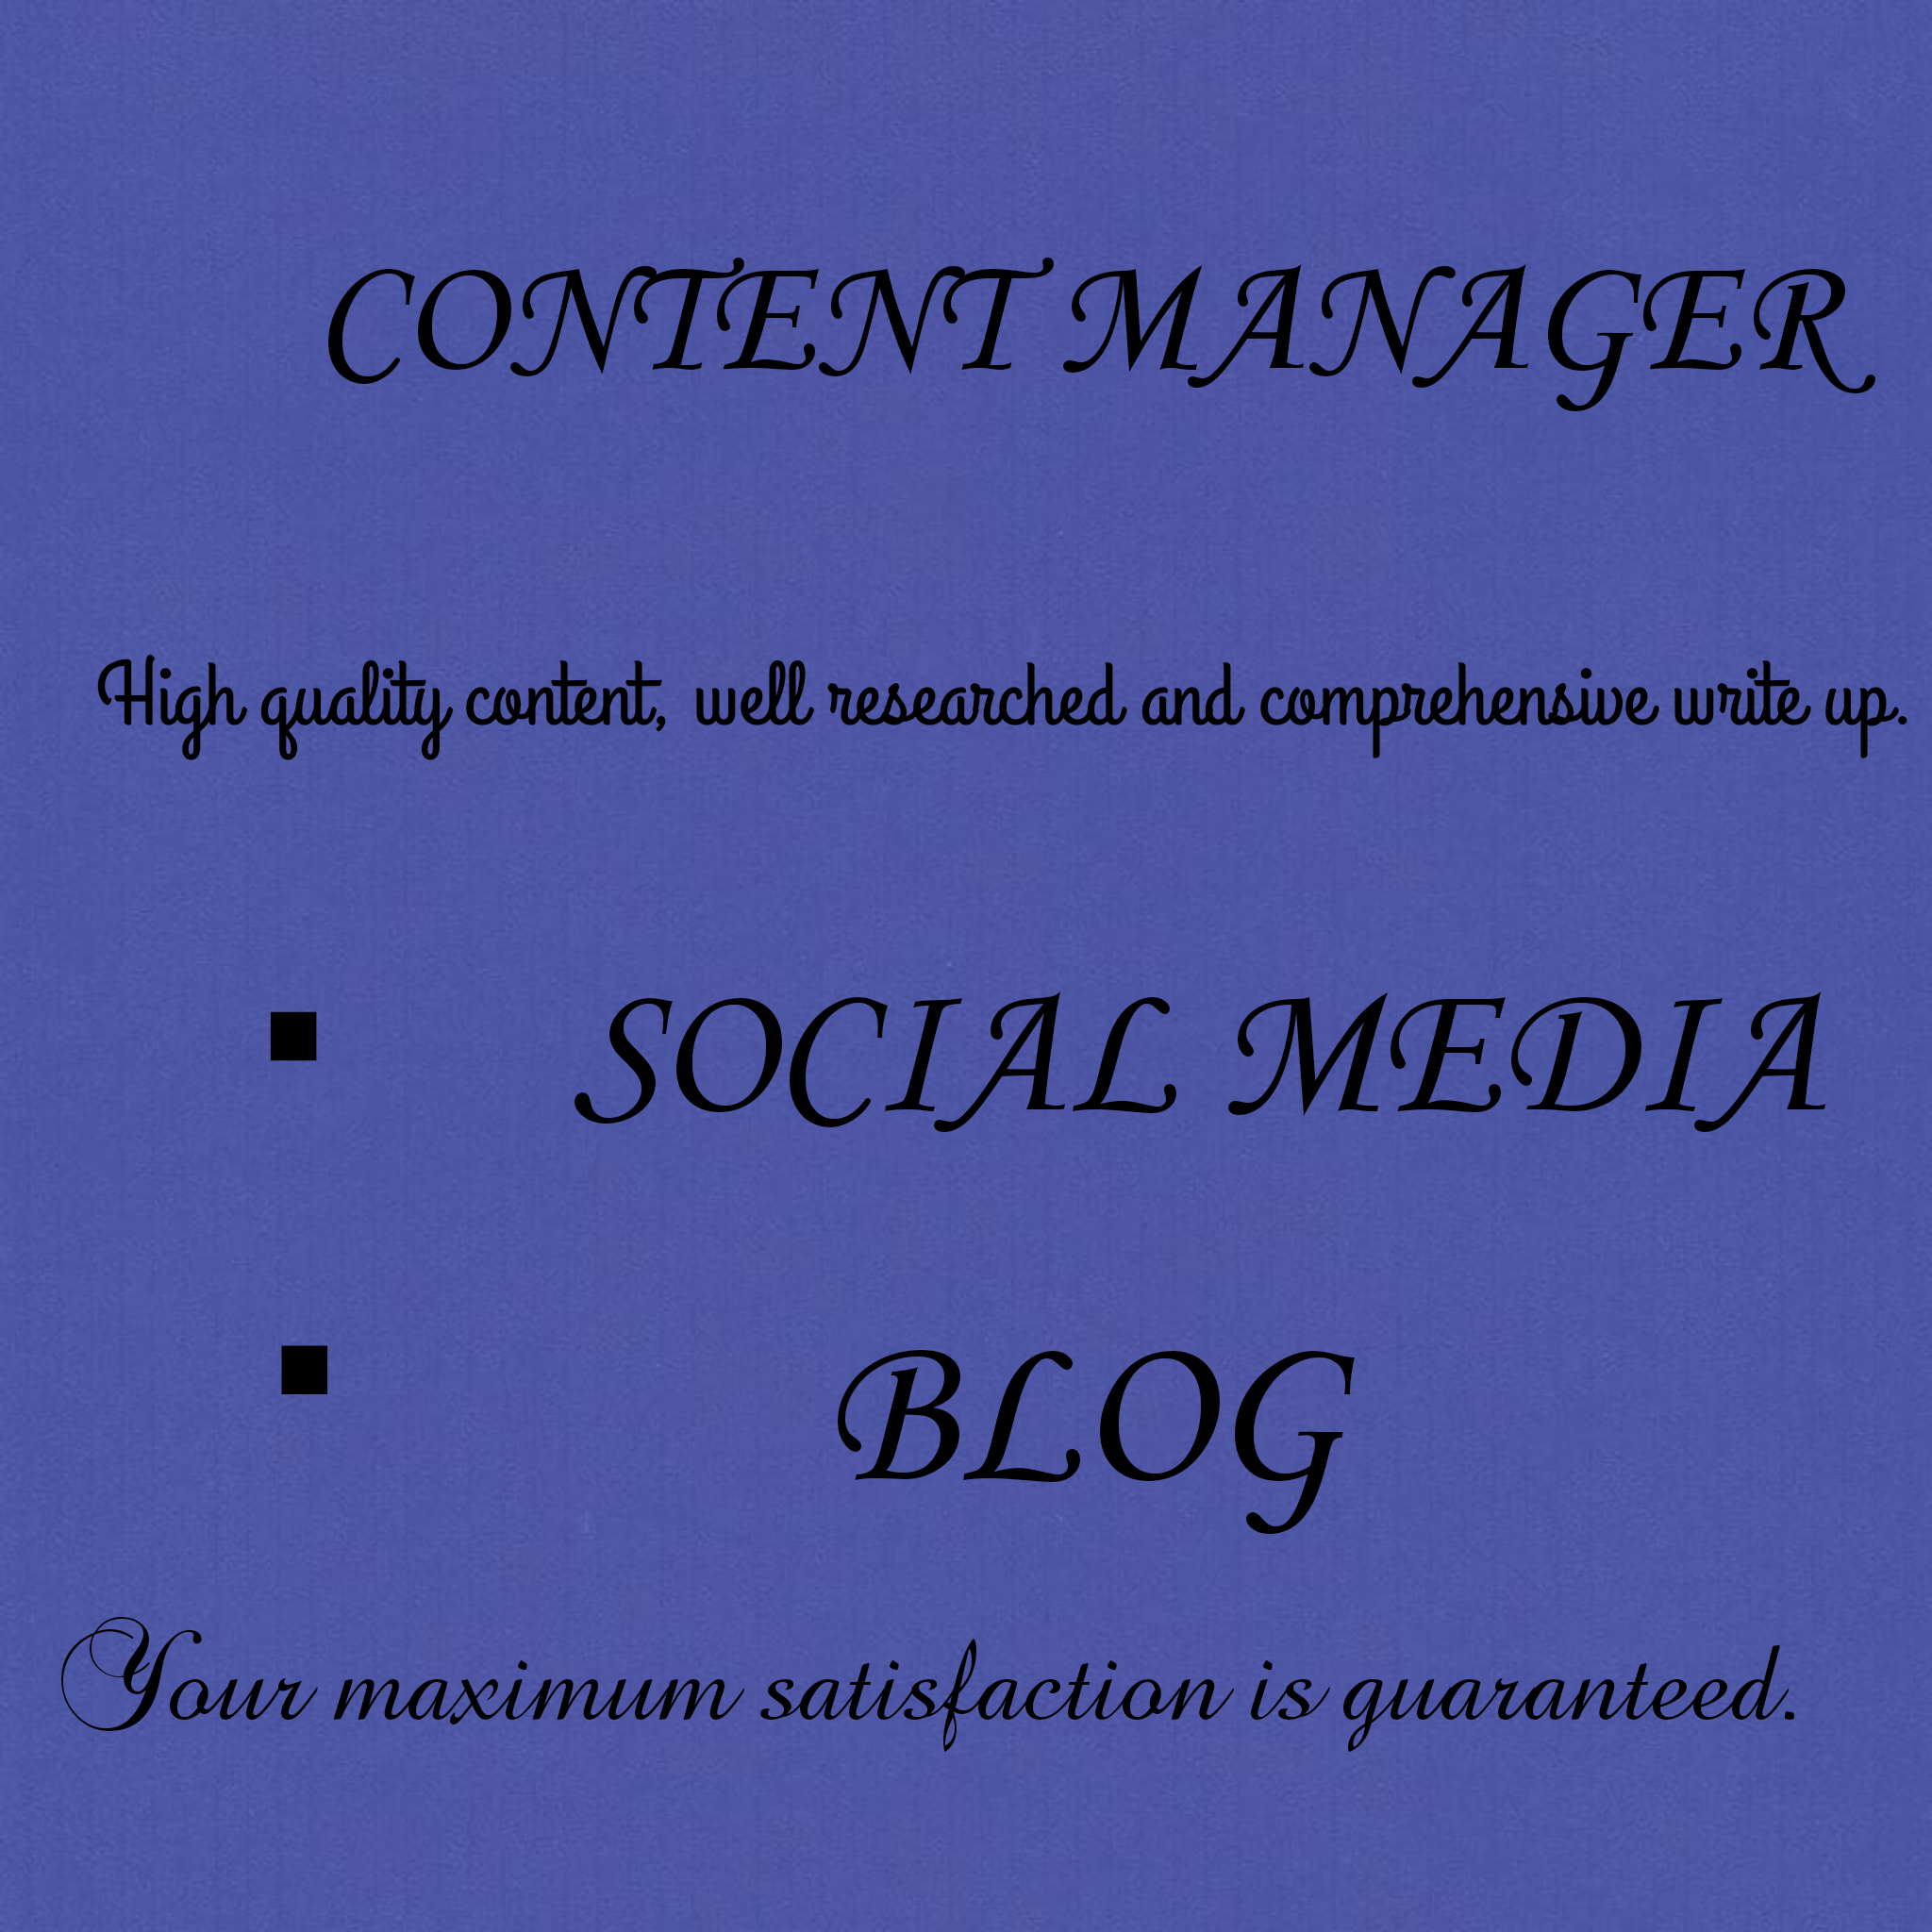 I will be your professional social media content manager